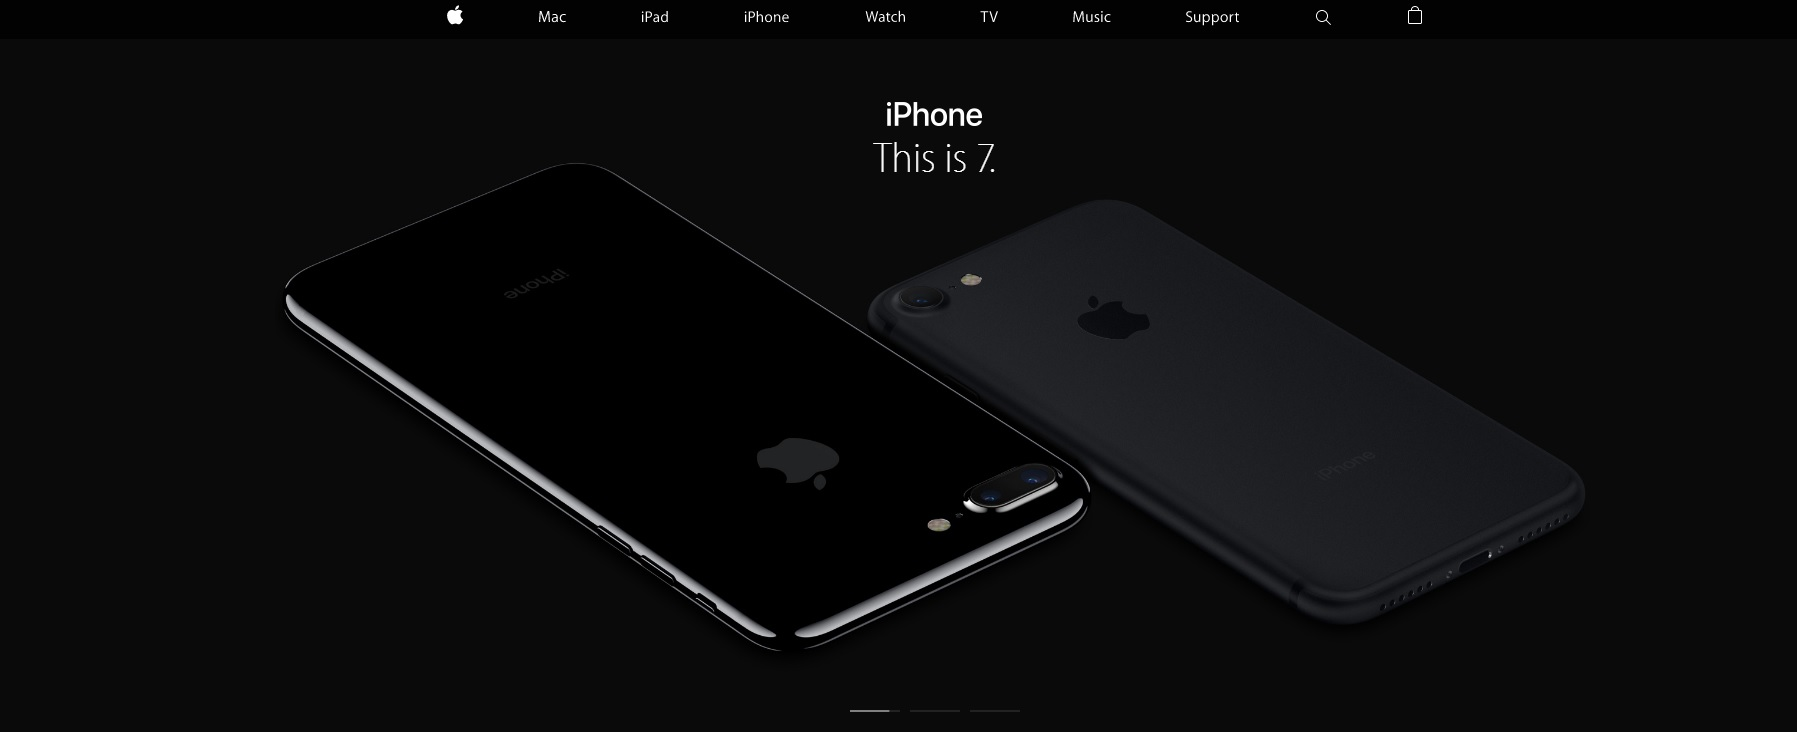 Apple.com Screenshot iPhone 7